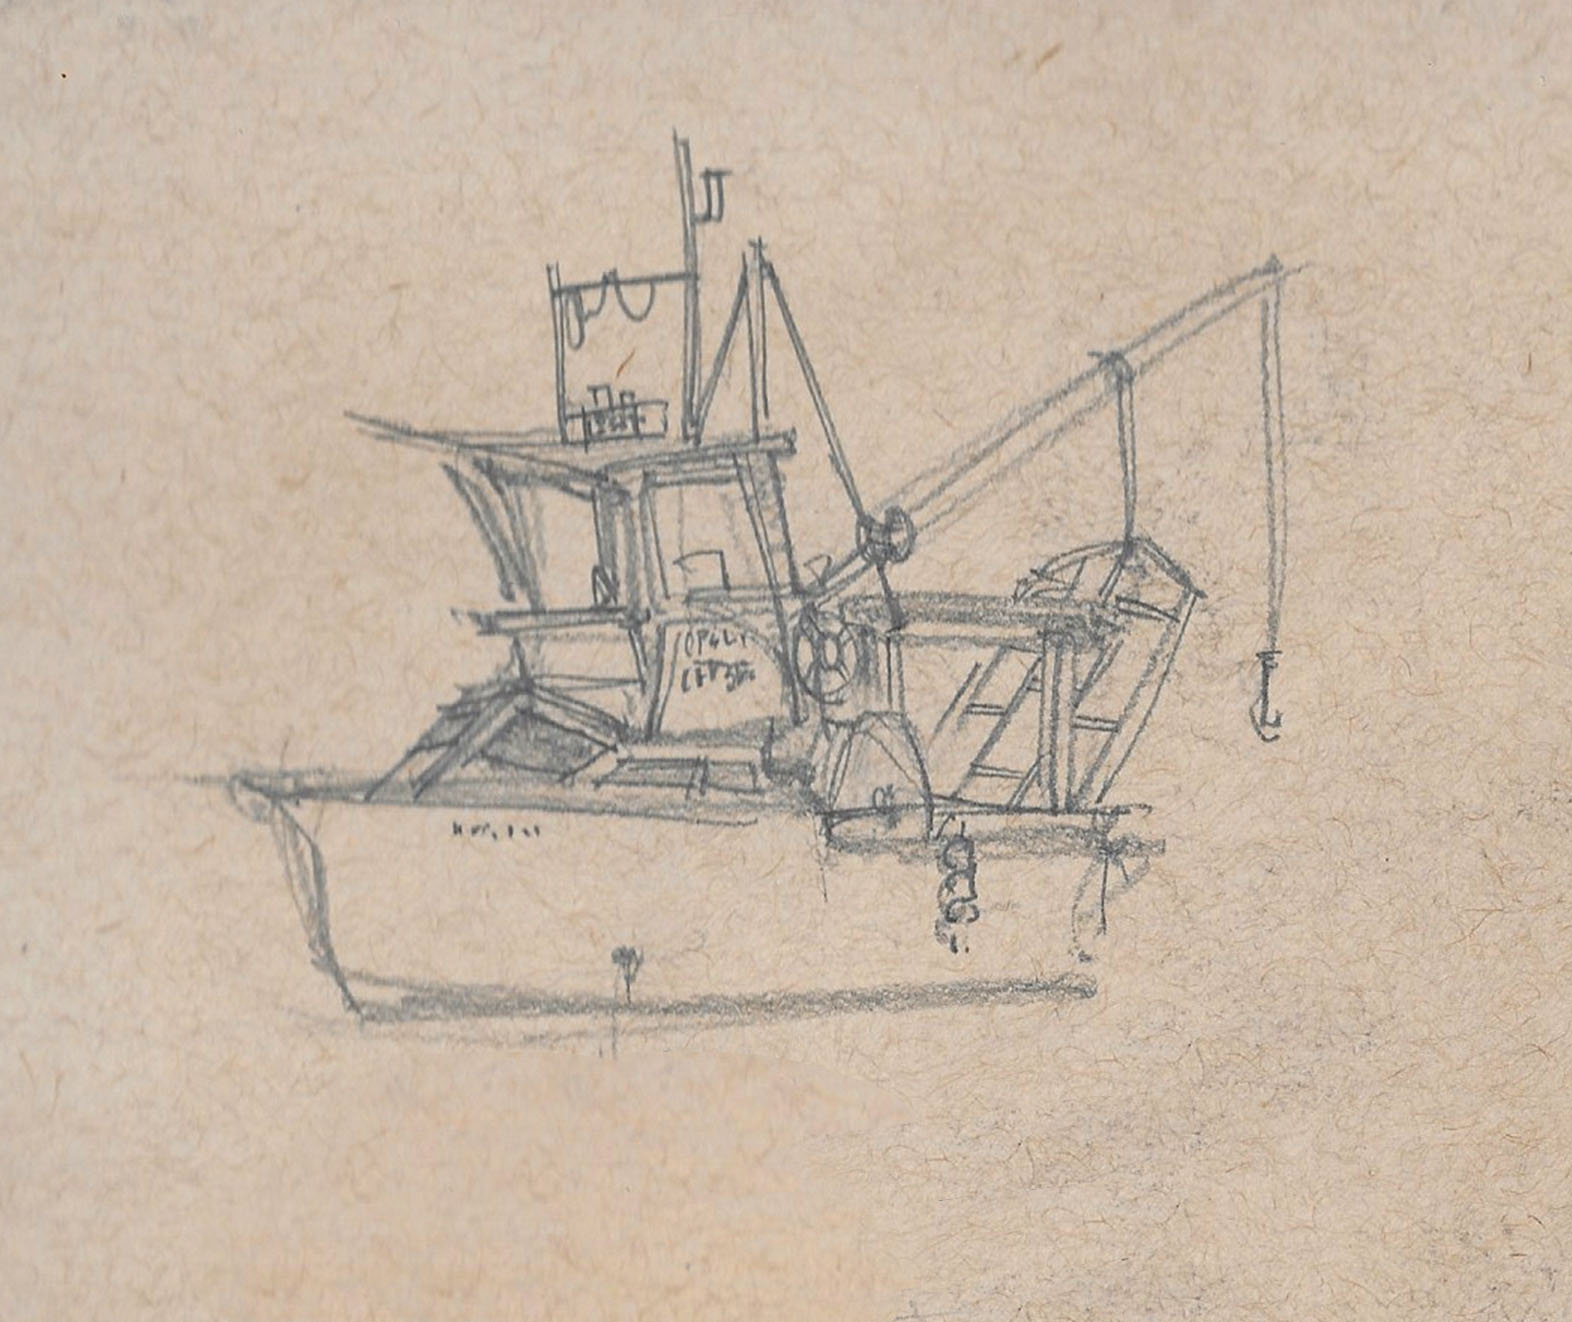 Sketch_Cleanup-SanPedro04-Fishing Boat.jpg